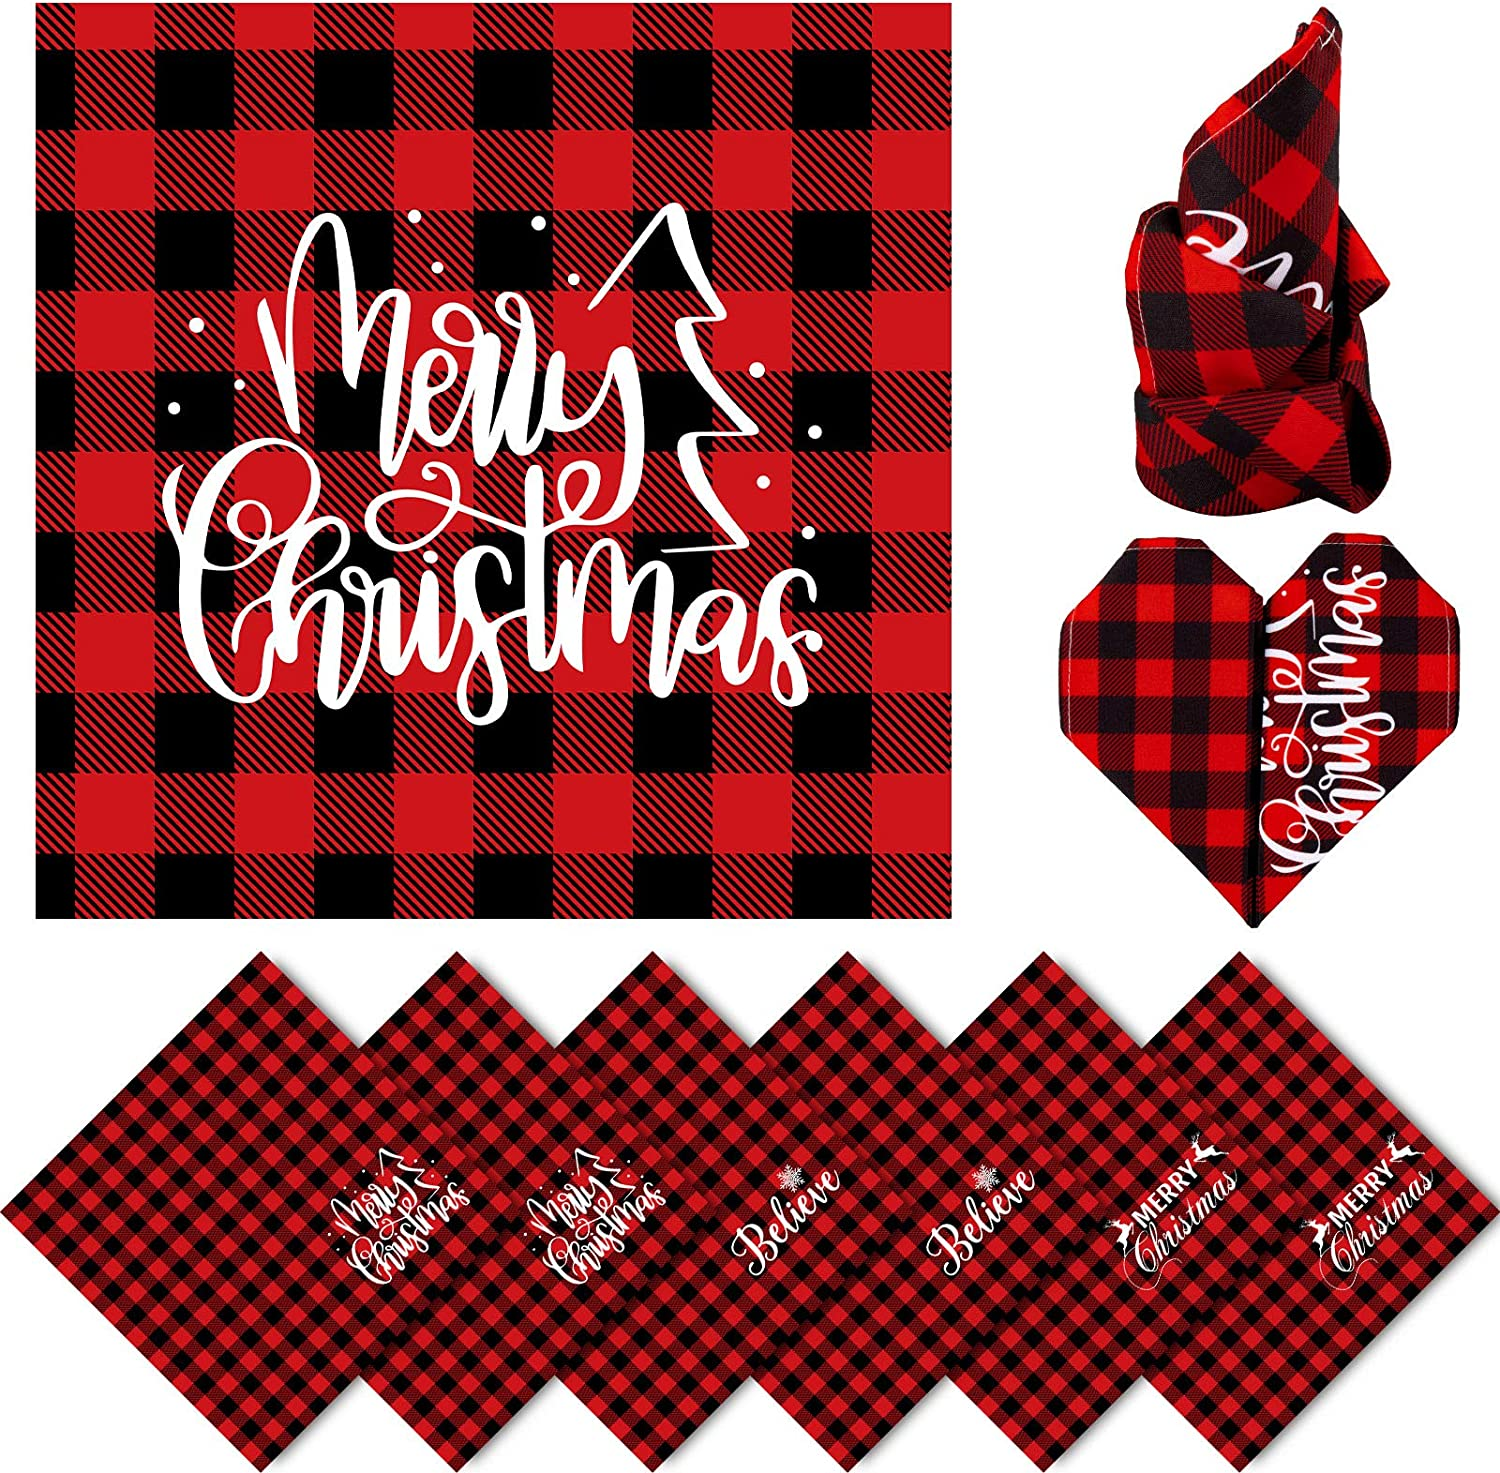 Whaline half 70% OFF Outlet Christmas Cloth Napkins Red Black Placemat Buffalo Plaid